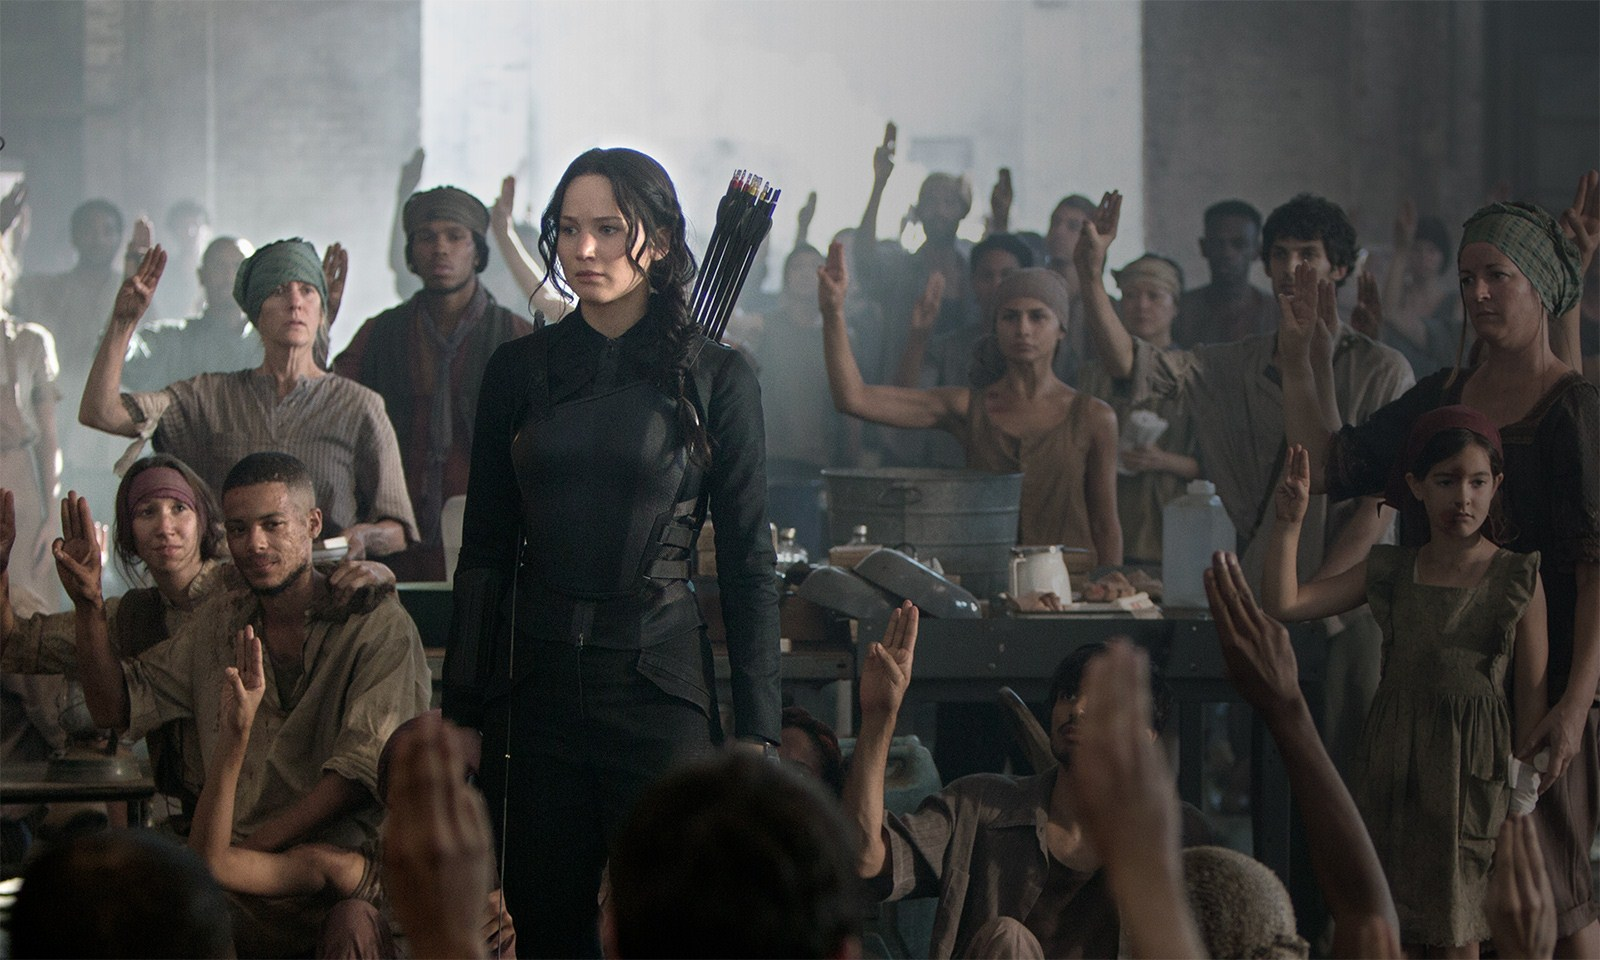 Jennifer-Lawrence-In-The-Hunger-Games-Mockingjay-Part-1-Images